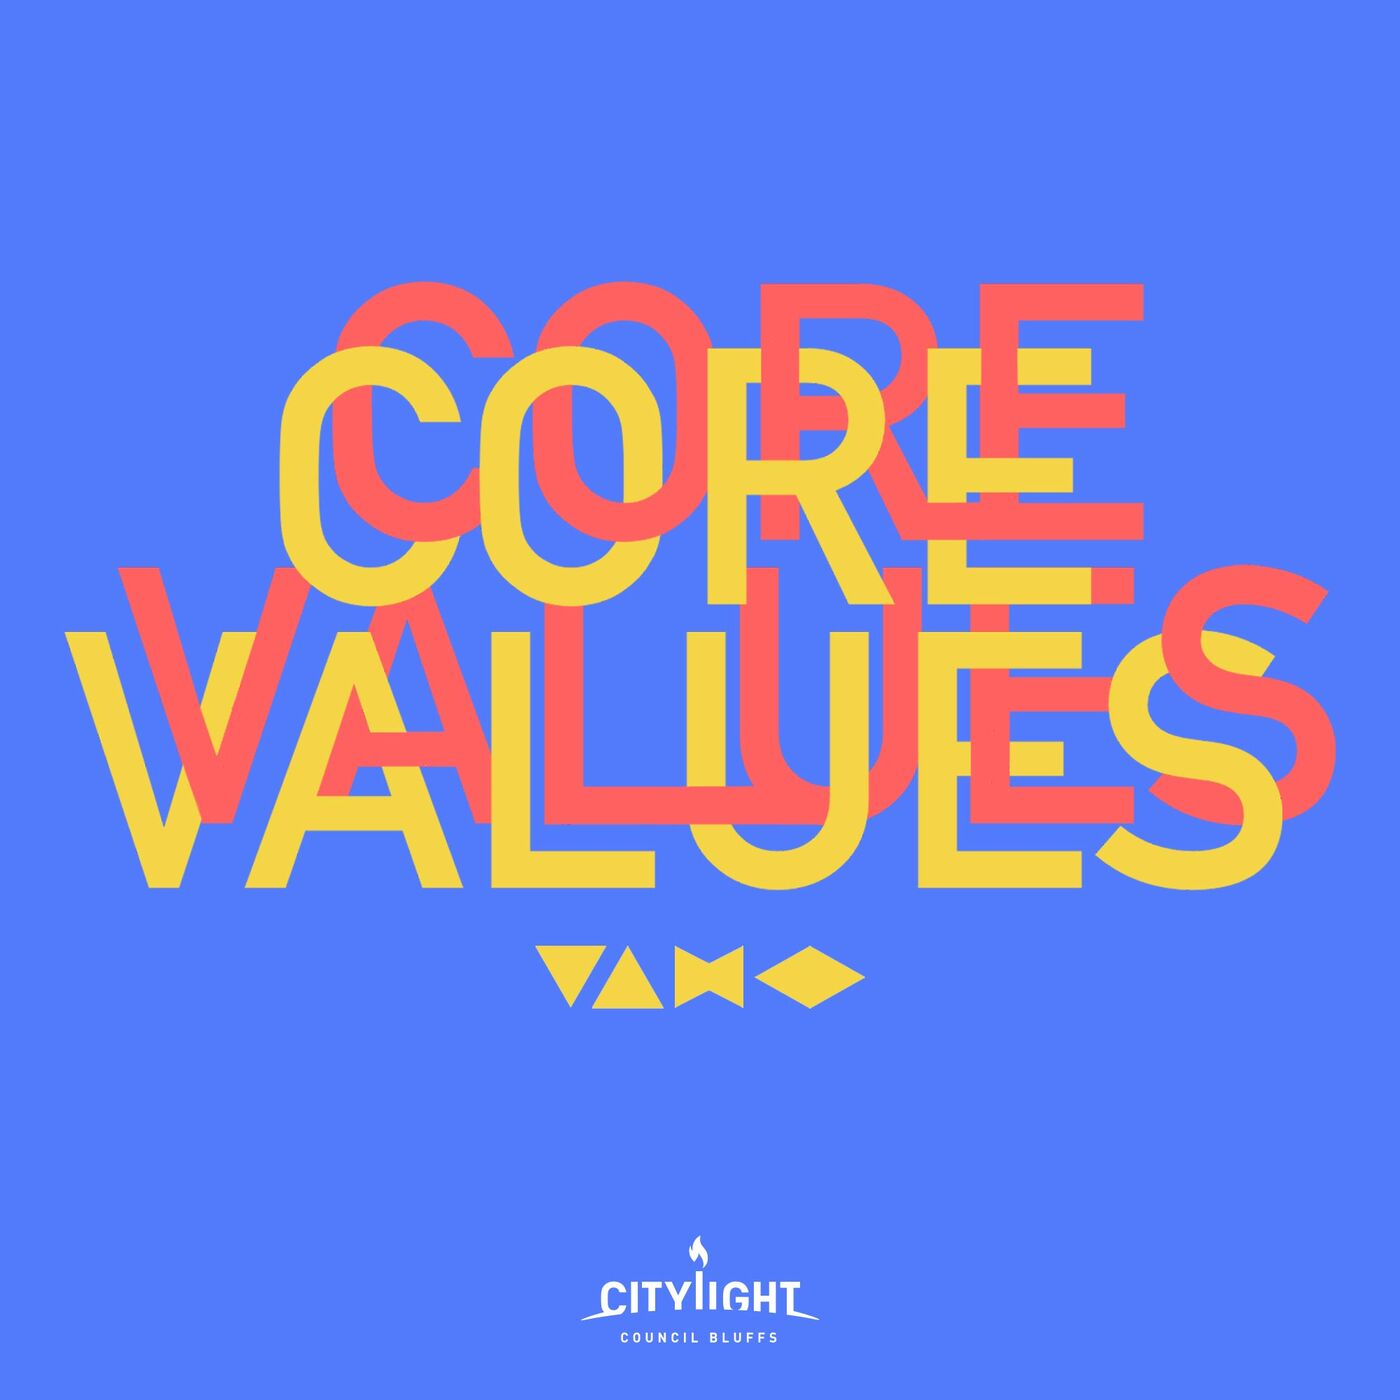 Core Values 2020: In, Community